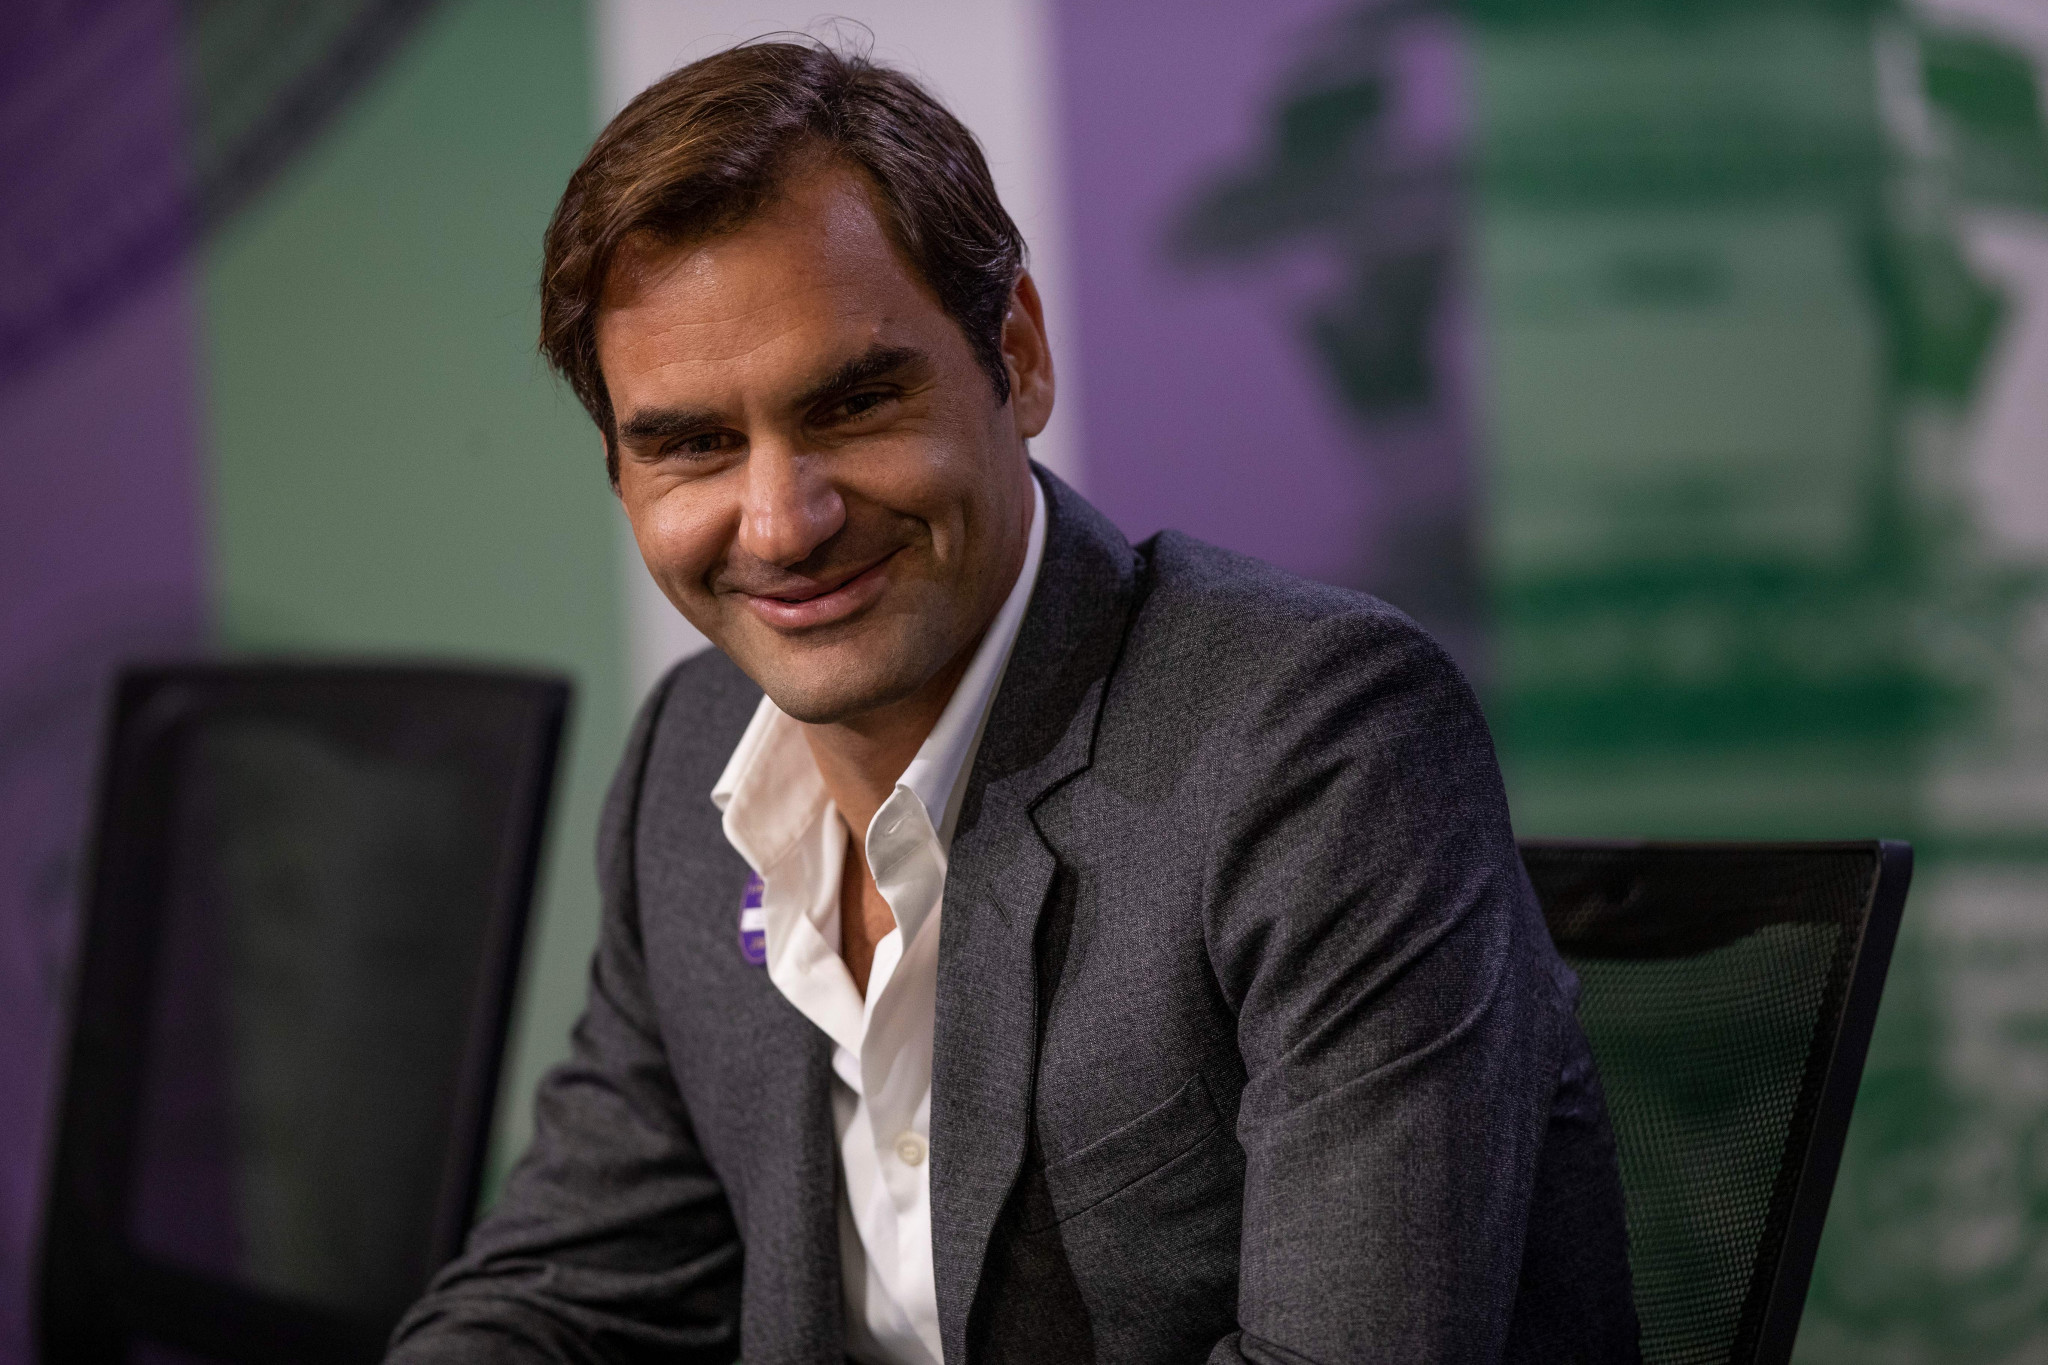 Roger Federer has said he thinks there will never be enough drug testing in tennis ©Getty Images